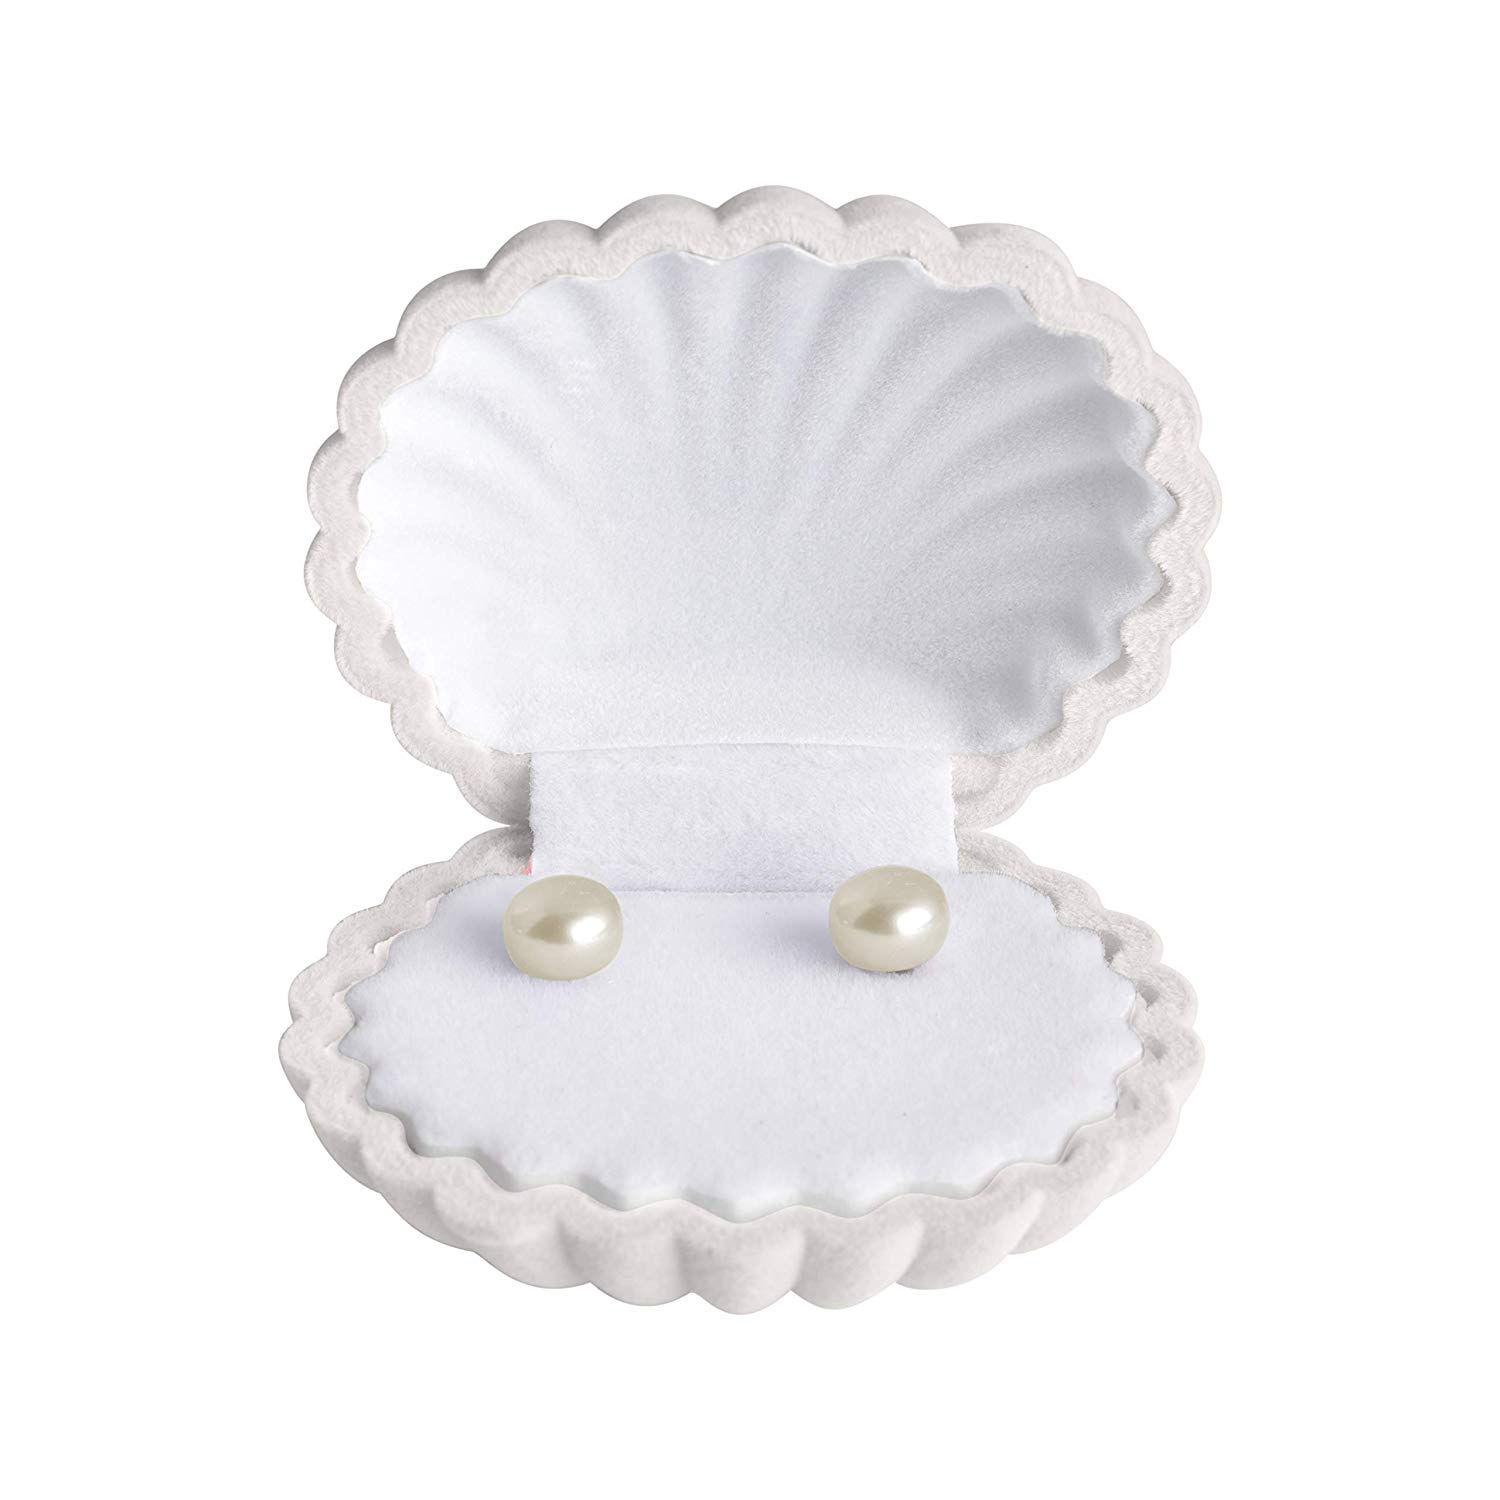 Pearl Earrings for Women | White | Button Shaped | Jewelry | Sterling Silver 925 | Silver Earrings | Freshwater Cultured | Stud Earrings | Superior Luster | Handpicked | Rhodium Plating